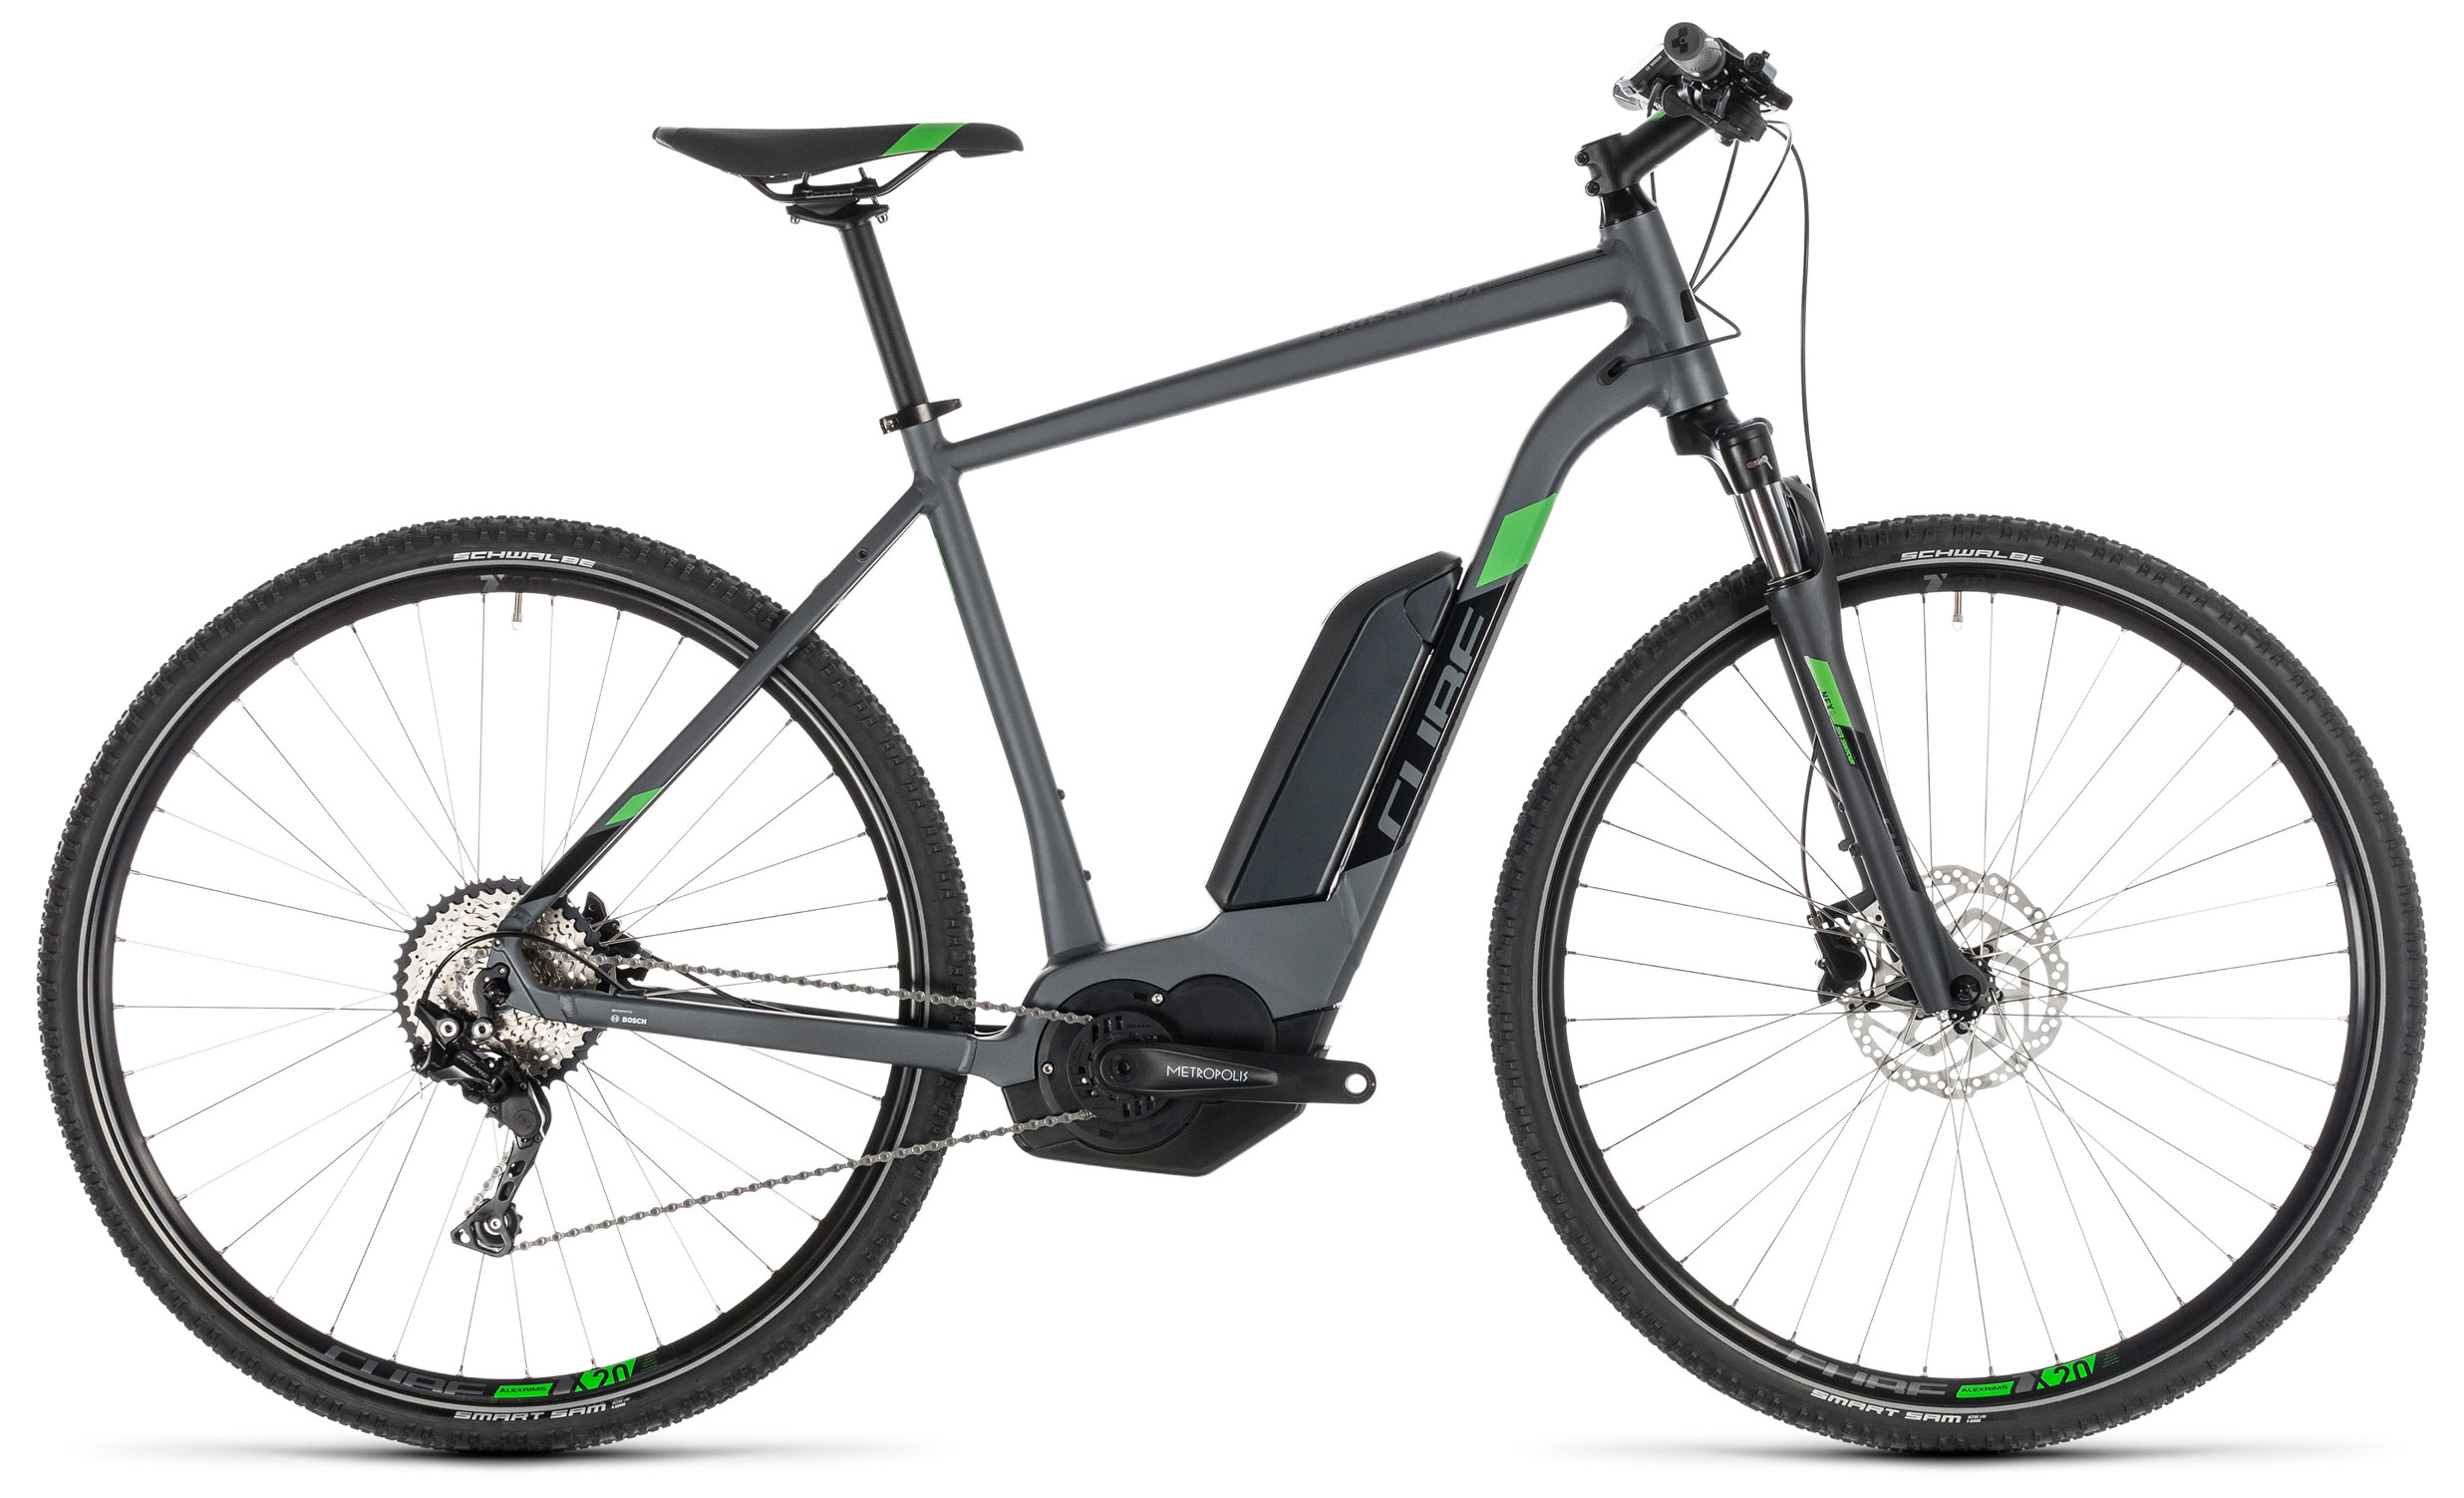 Велосипед Cube Cross Hybrid Pro 400 2019 велосипед cube travel hybrid one rt 400 2017